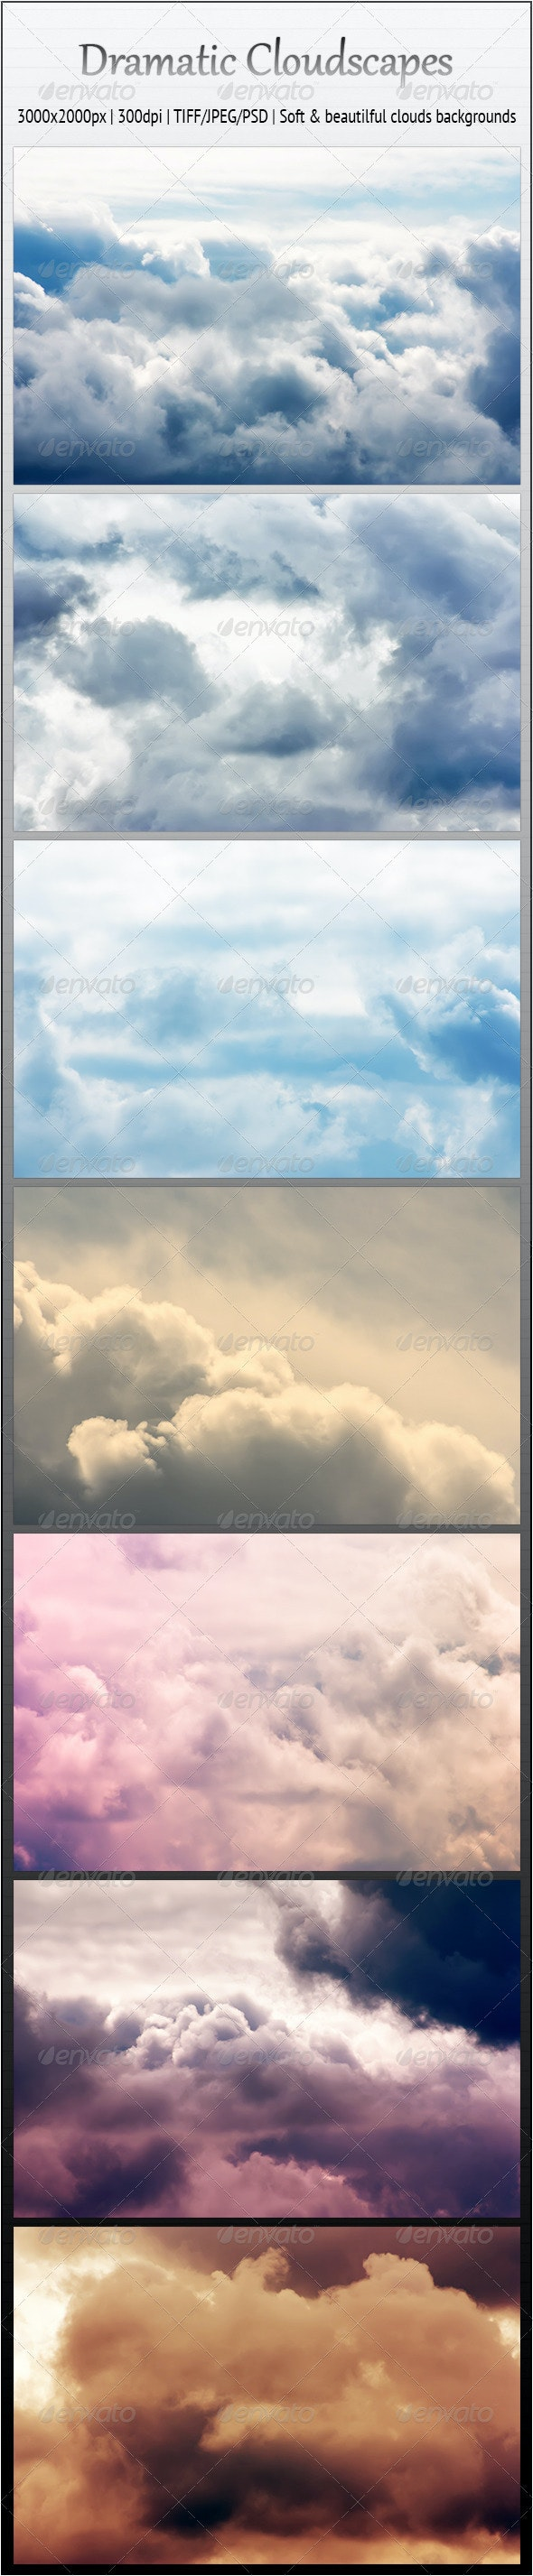 Dramatic Cloudscapes - 7 Soft Backgrounds - Nature Backgrounds